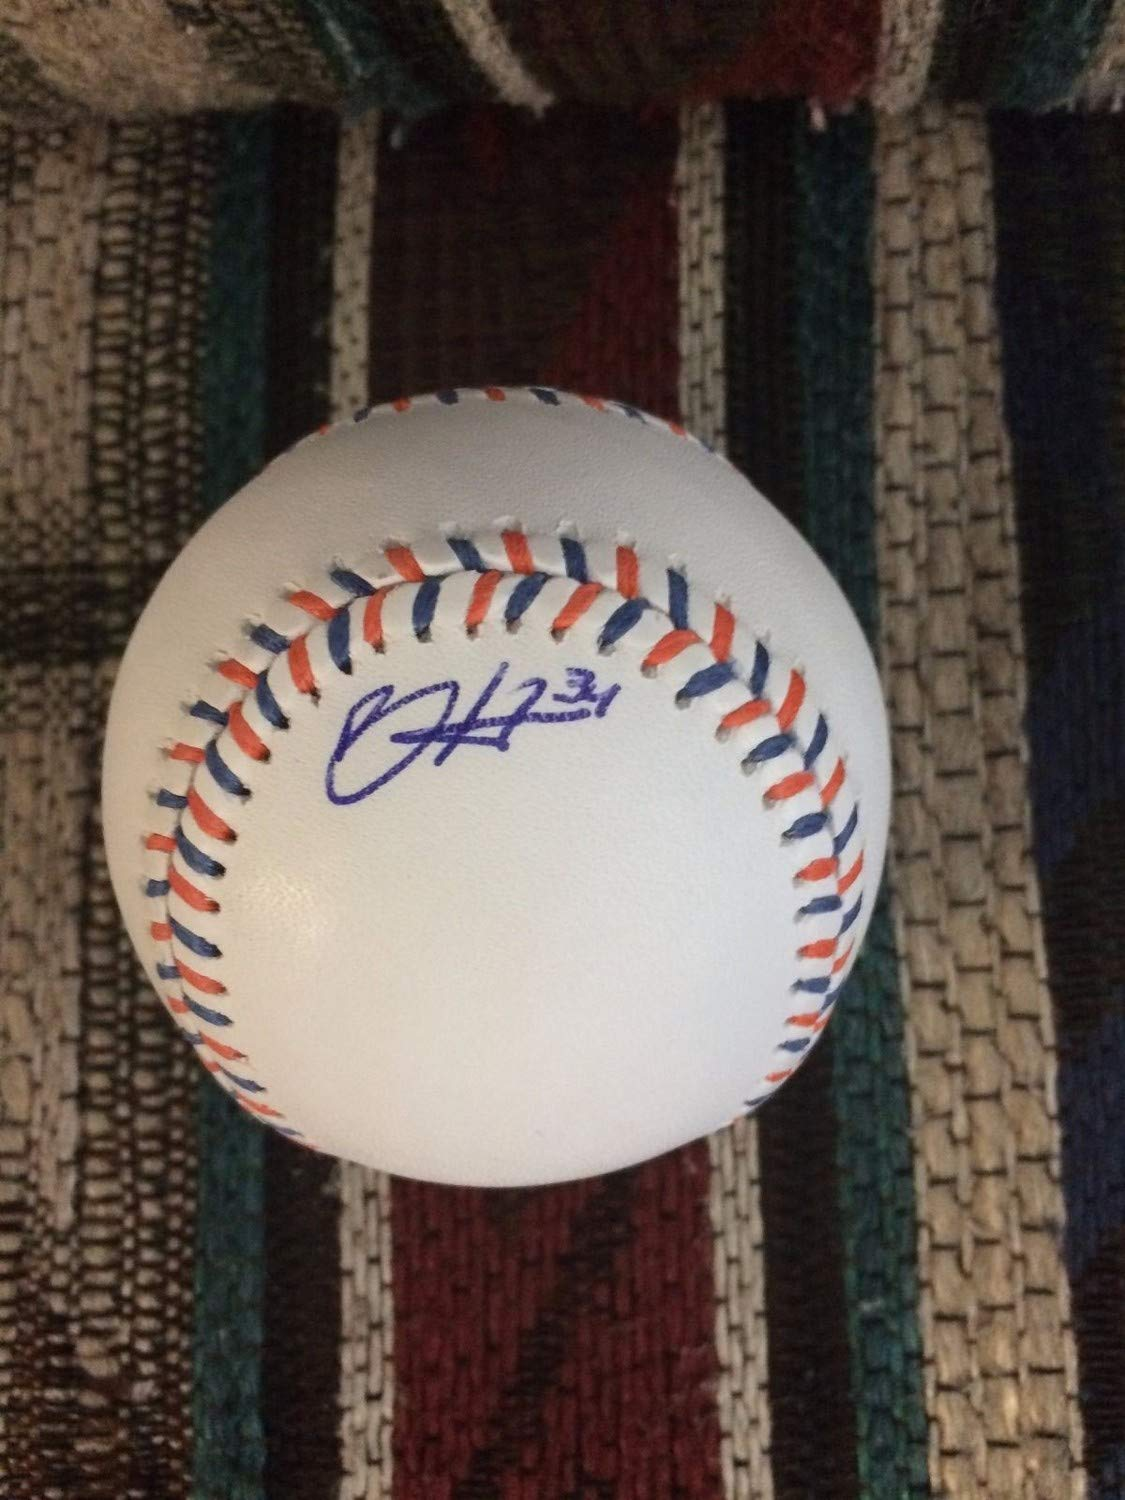 Bryce Harper Autographed Signed 2013 All Star OMLB/JSA Loa And Sticker